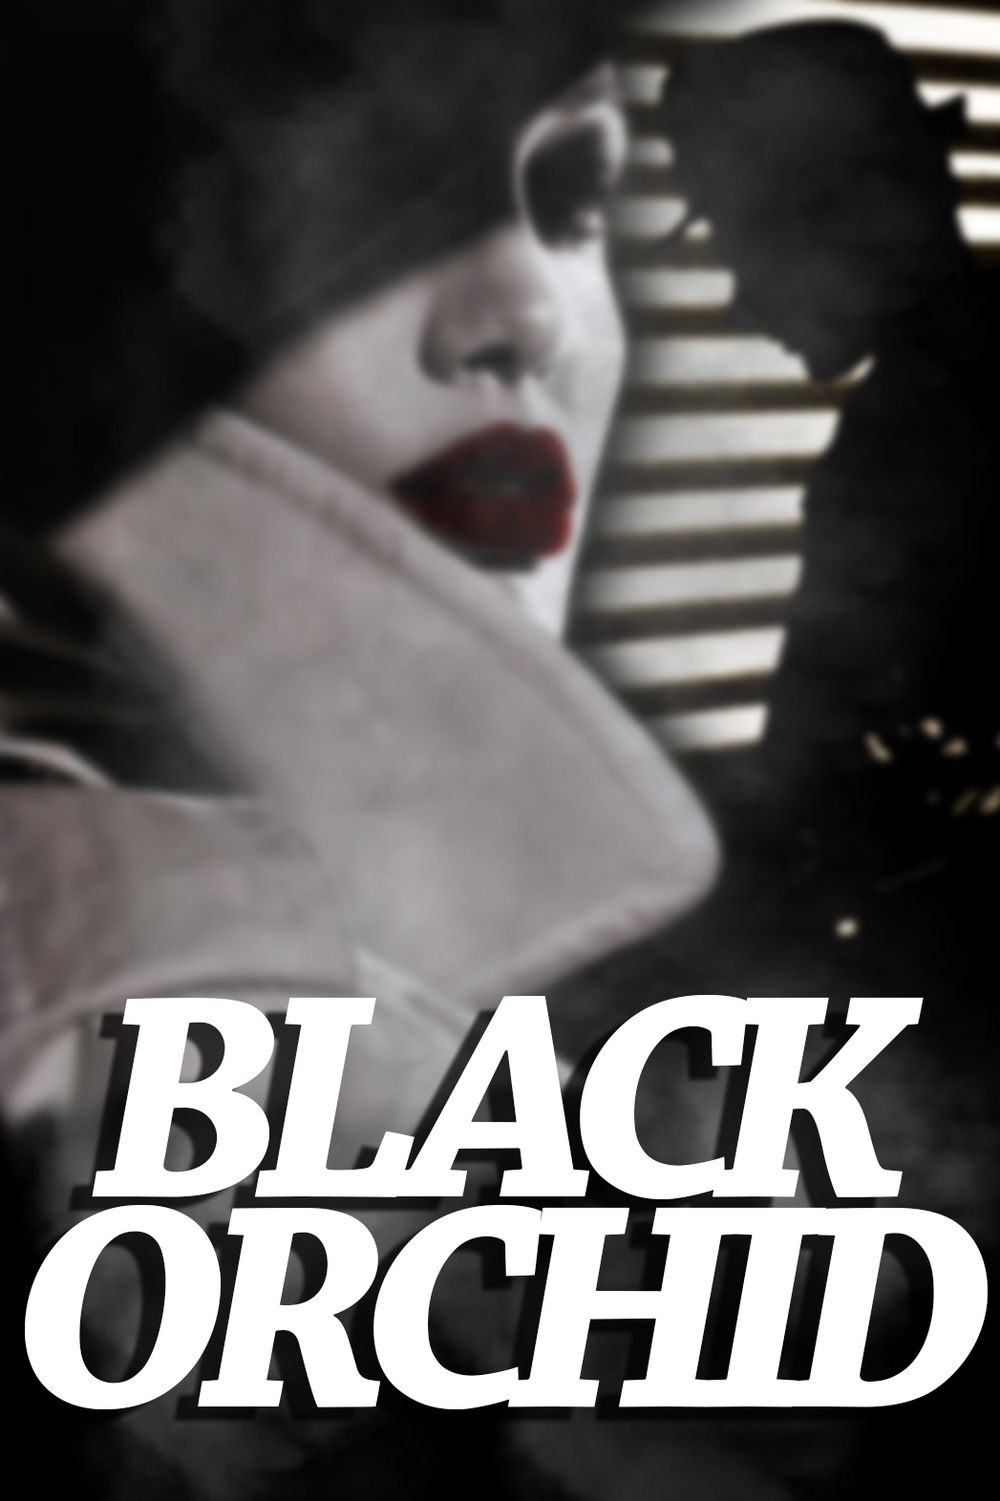 Black Orchid Poster.jpg